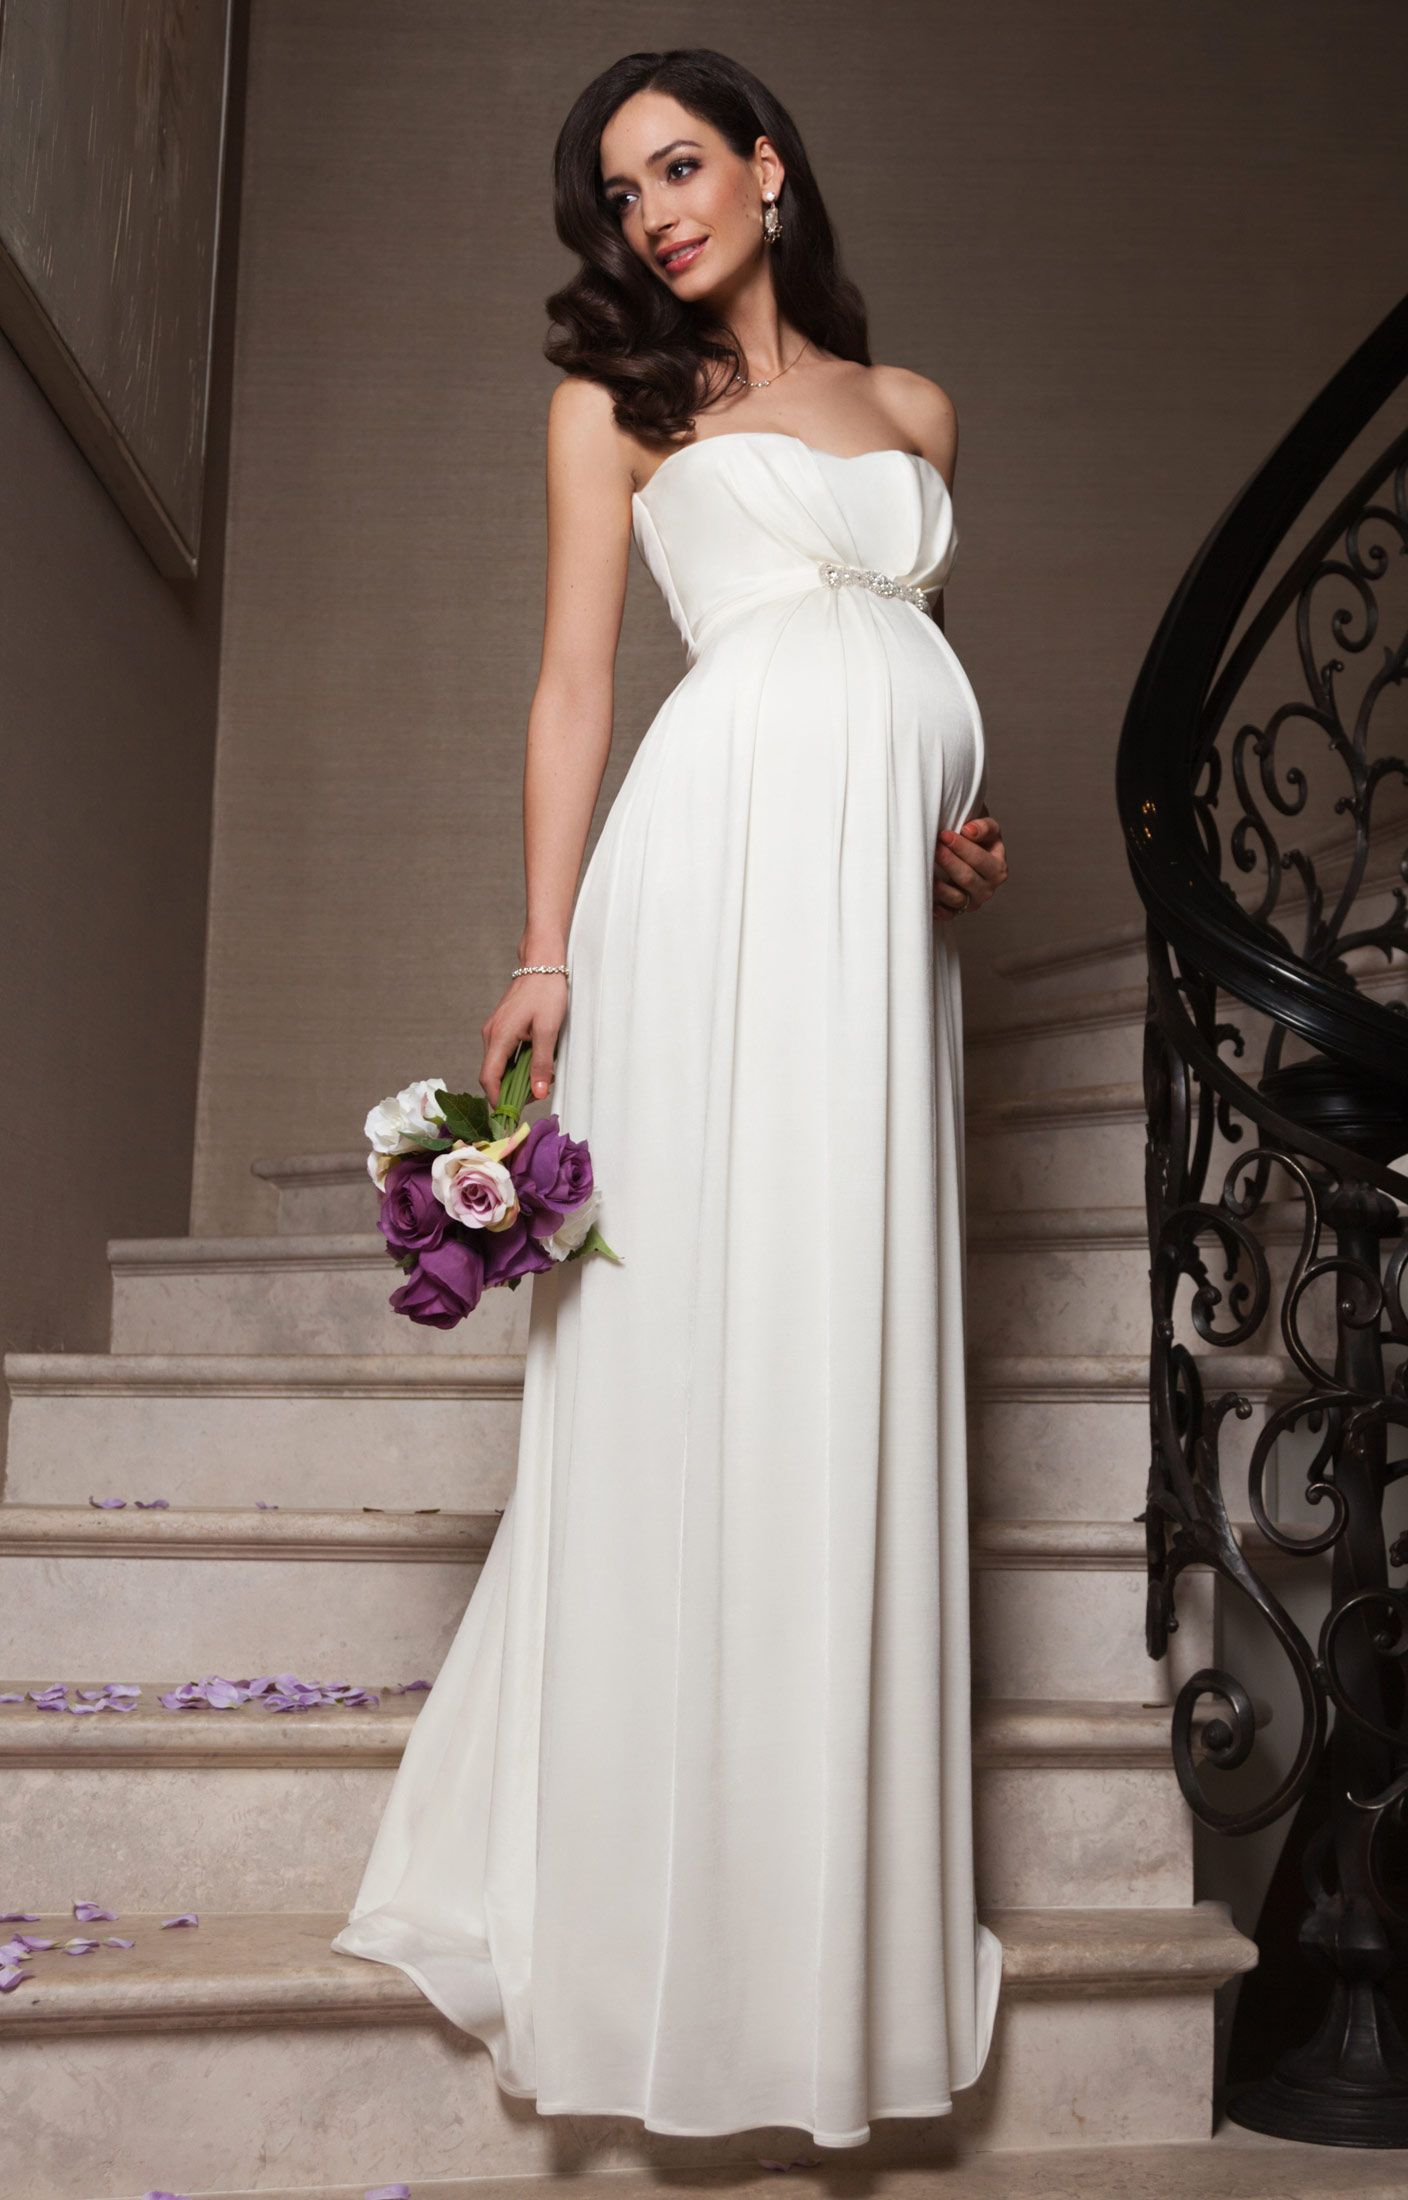 Prettiest maternity wedding dress | Chic Love | Pinterest ...